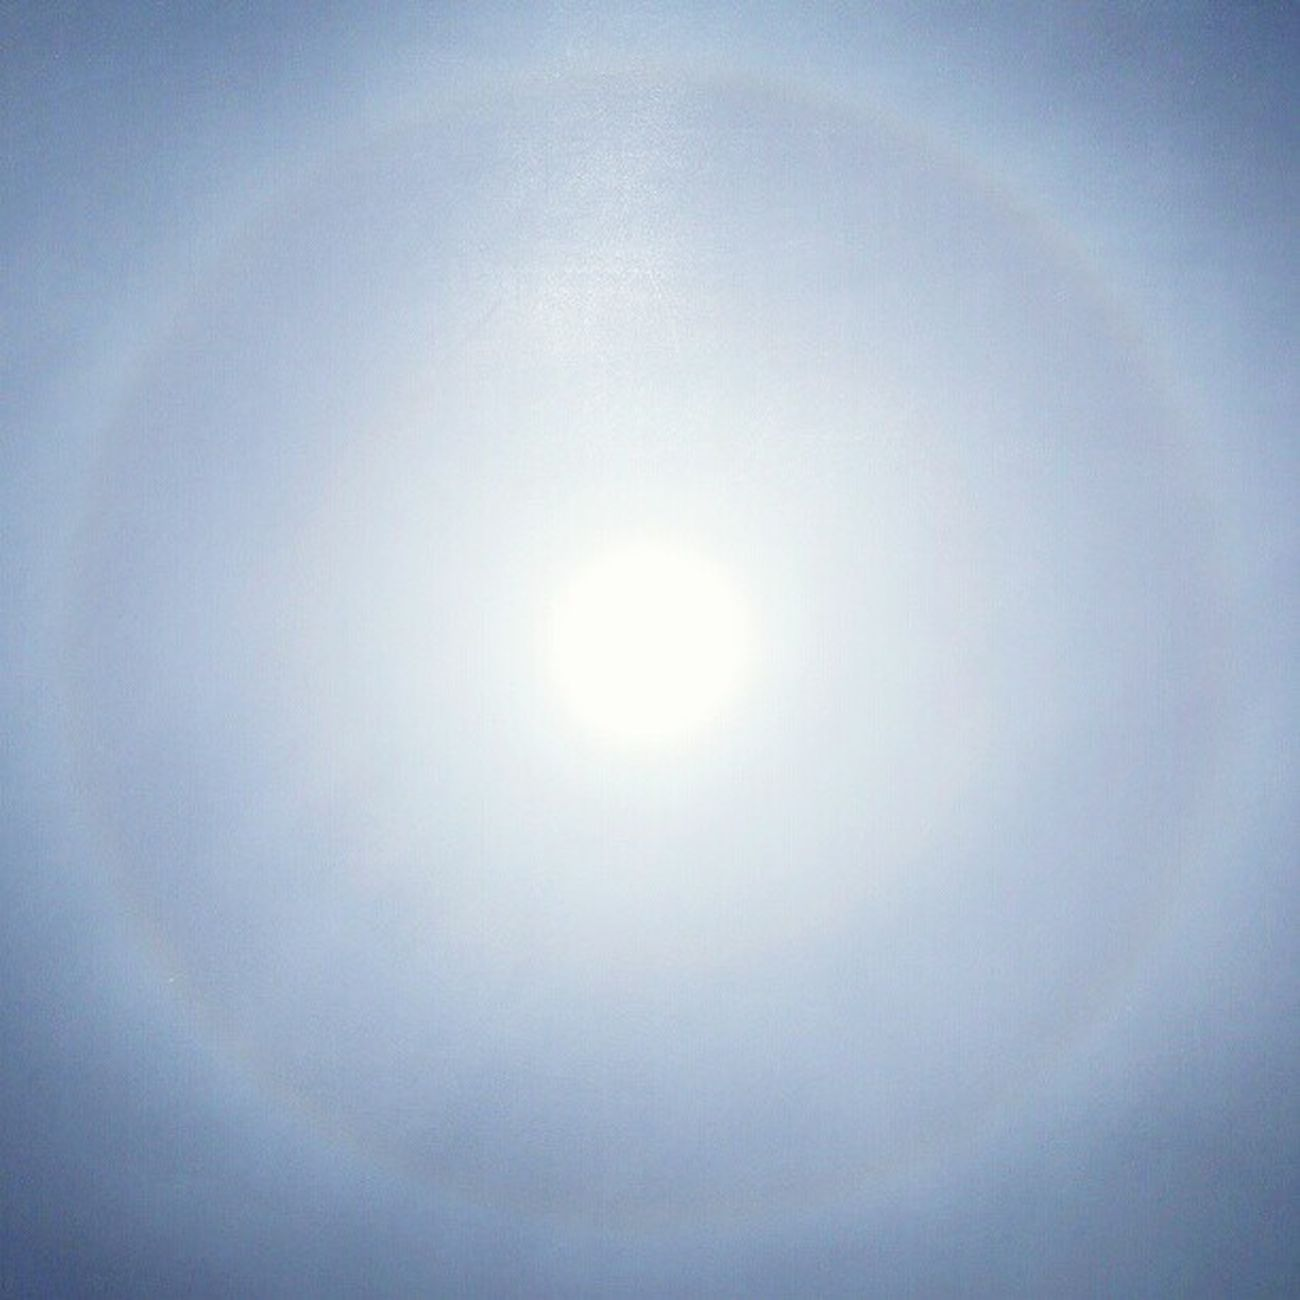 Sun had a cool rainbow around.. In mexico 360rainbow Sun Rainbow Rainbowcircle sunlight sunrainbowcircle sungazing sunlovers mexico playadelcarmen beautifulview